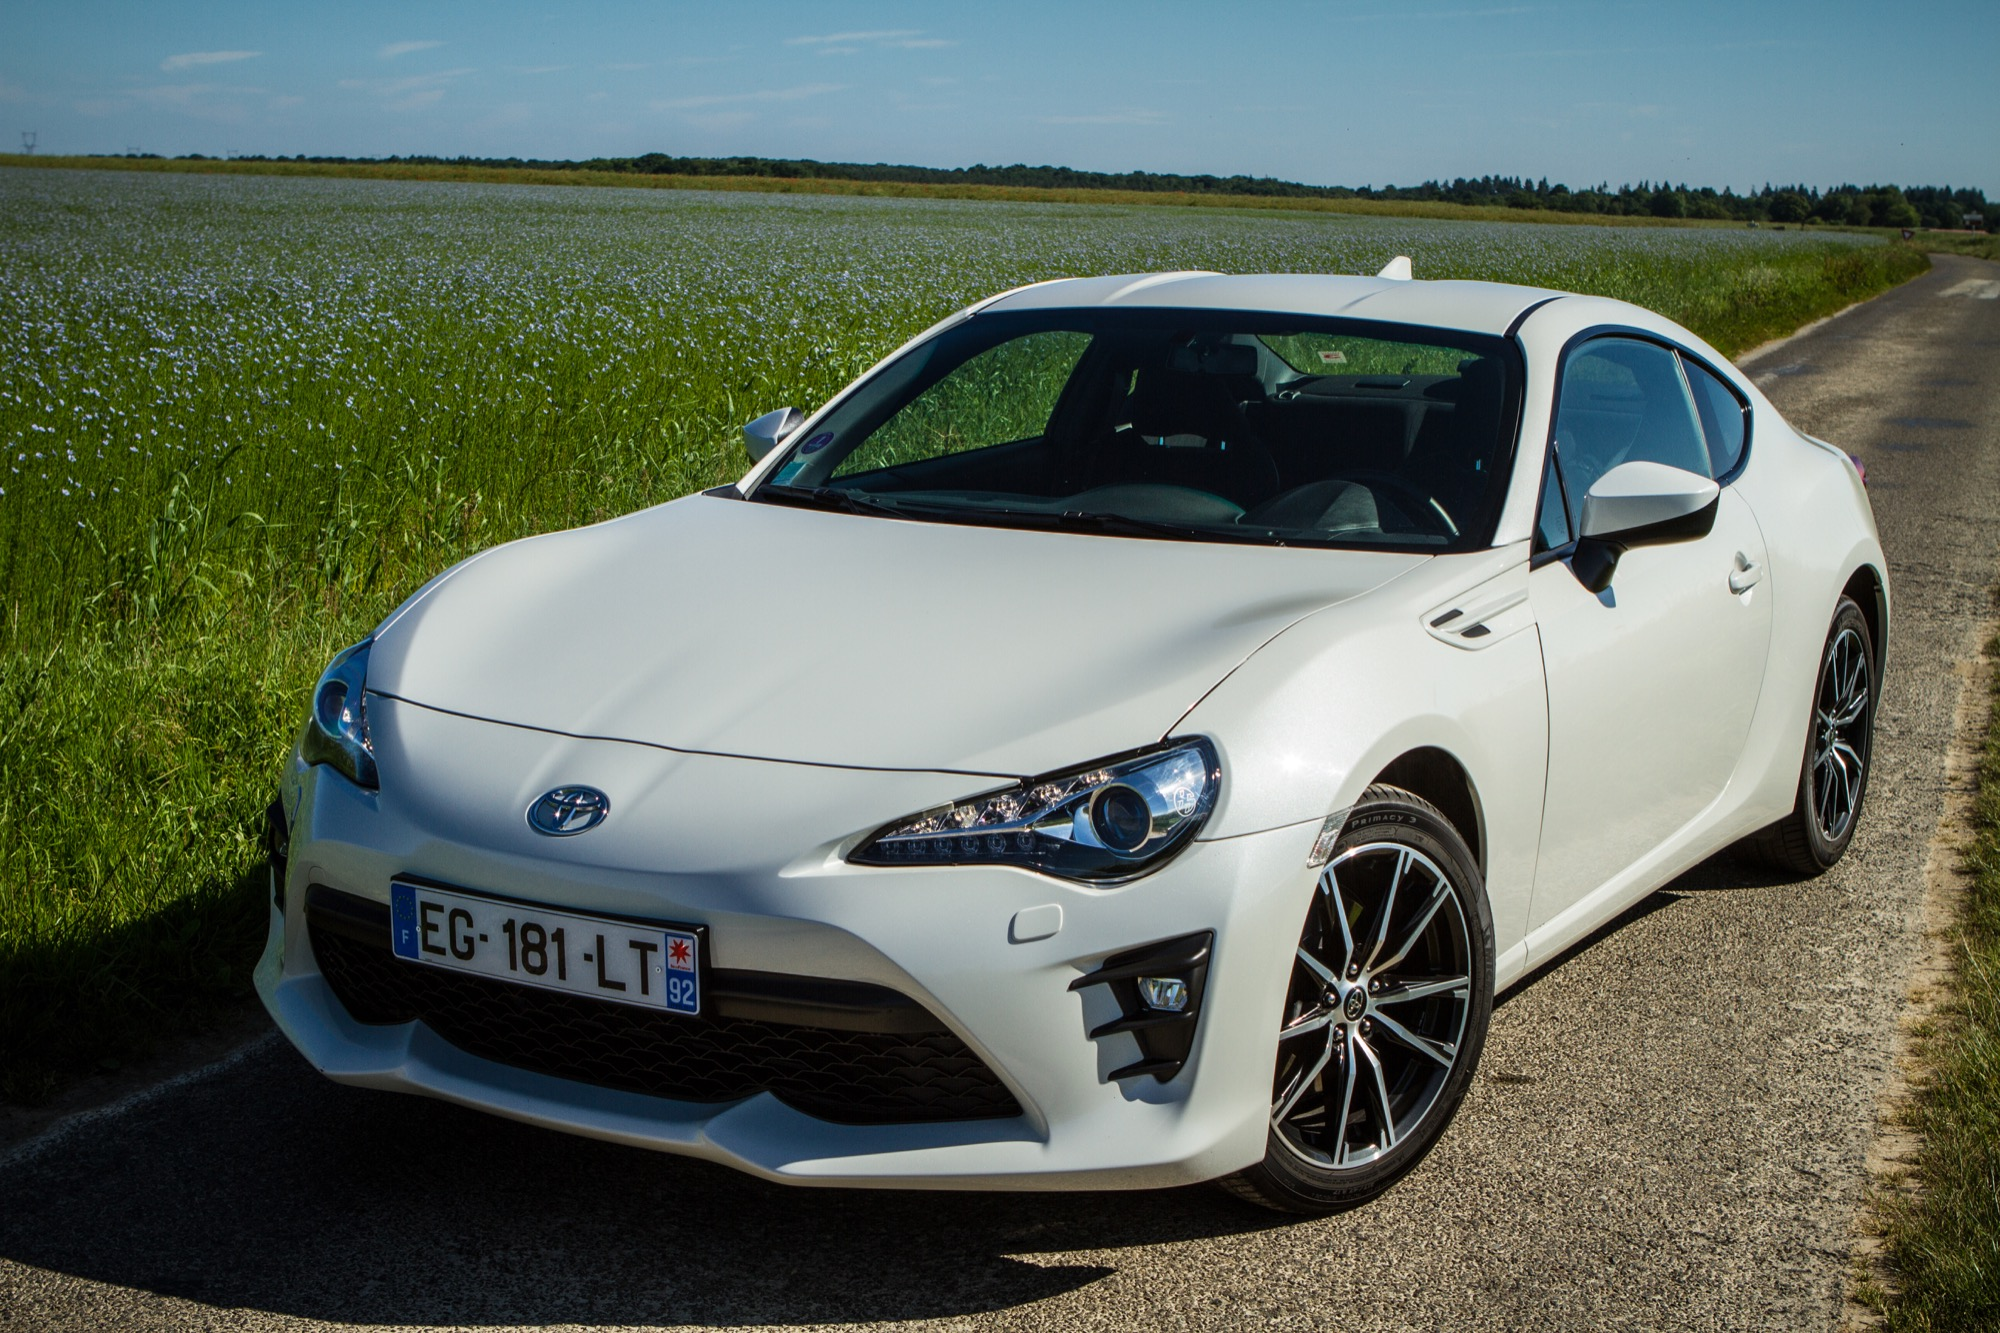 essai toyota gt86 exterieur 13 le blog de viinz. Black Bedroom Furniture Sets. Home Design Ideas